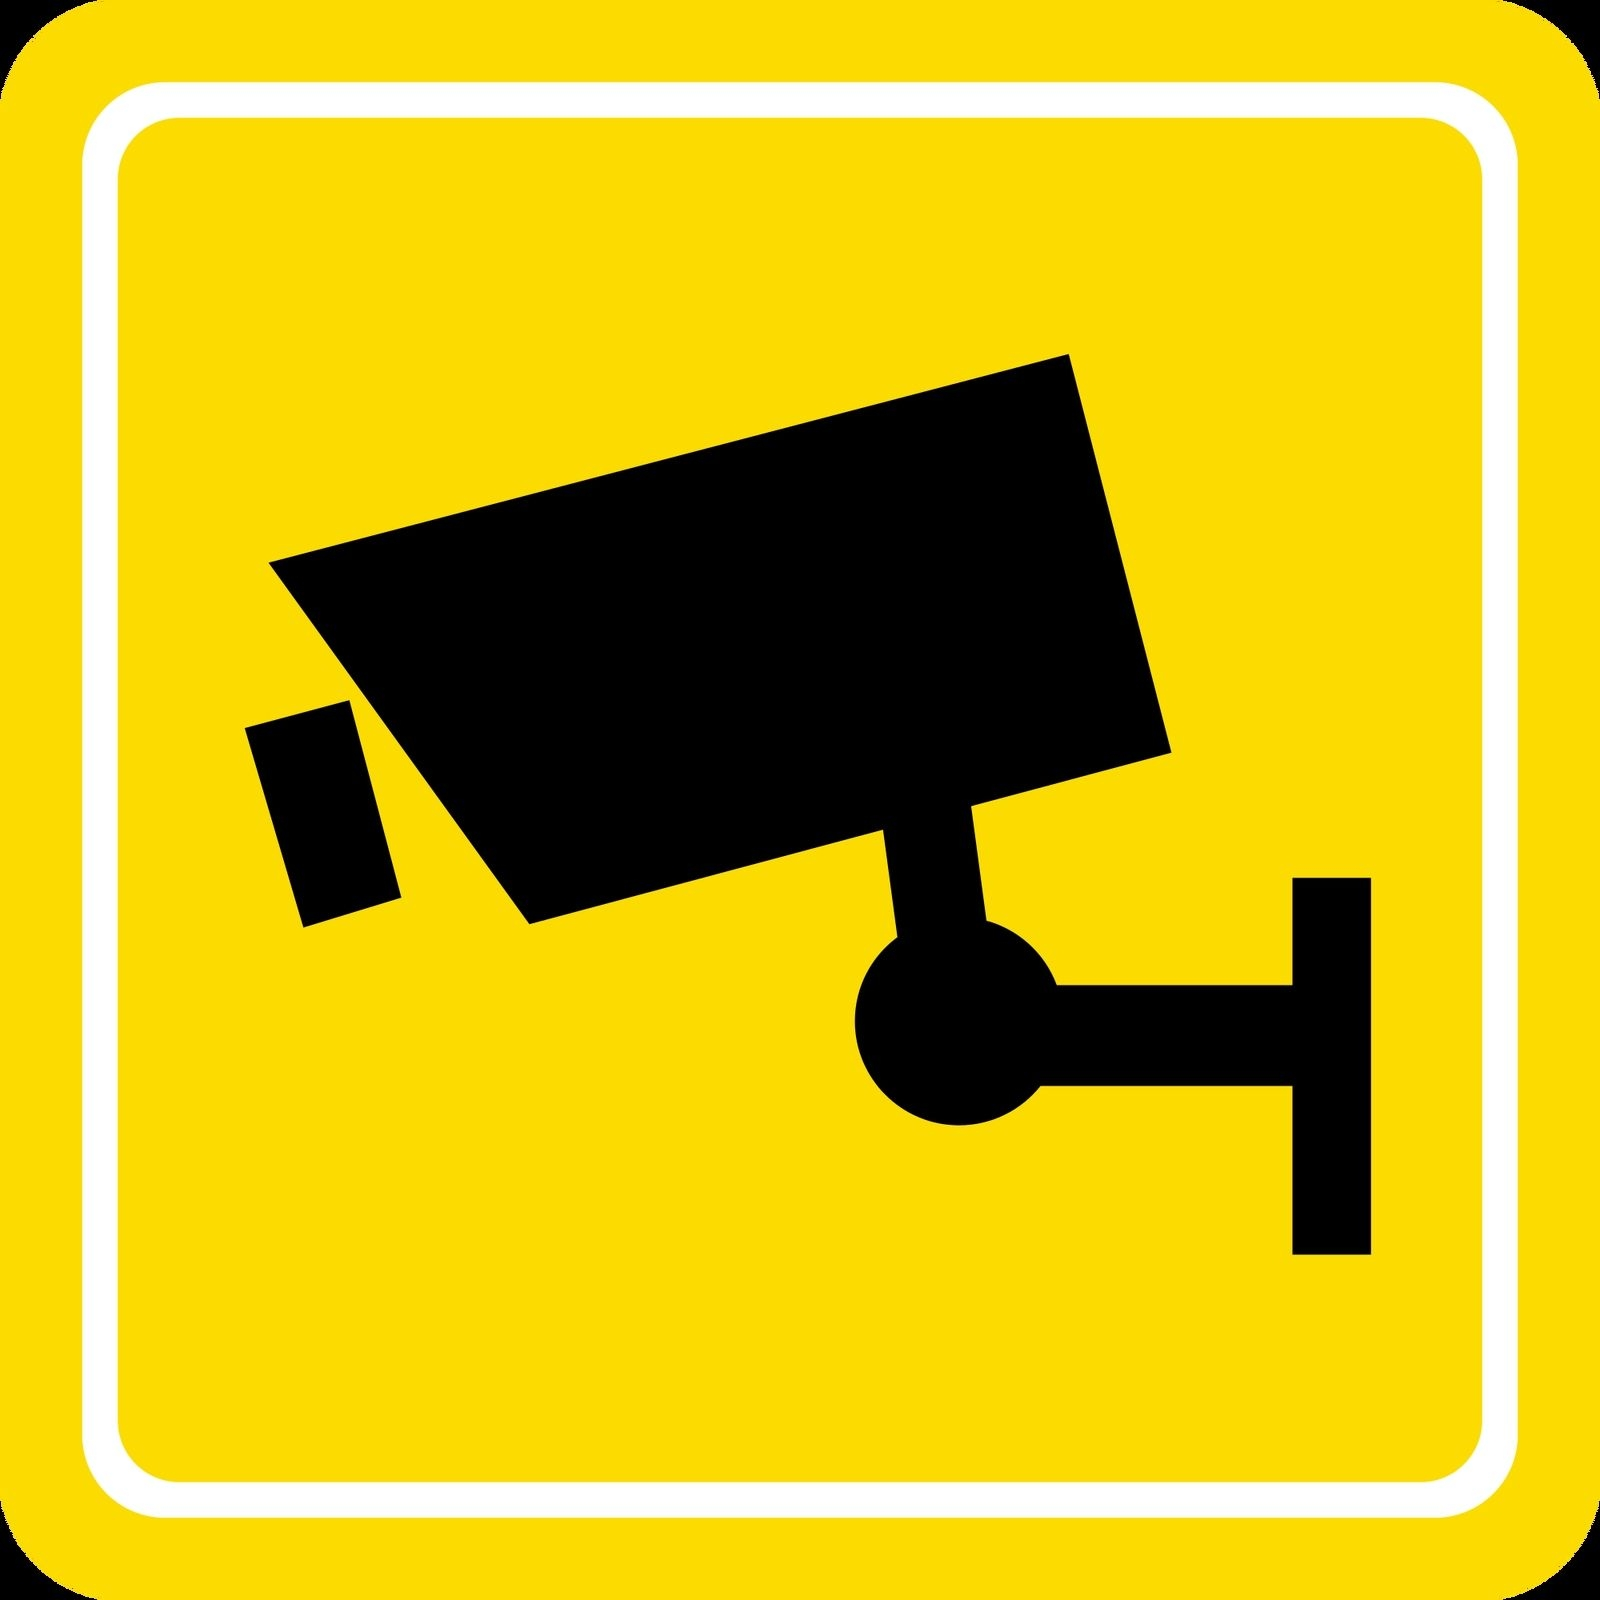 Construction Wall Stickers Warning Cctv In Operation Surveillance Monitoring Sticker